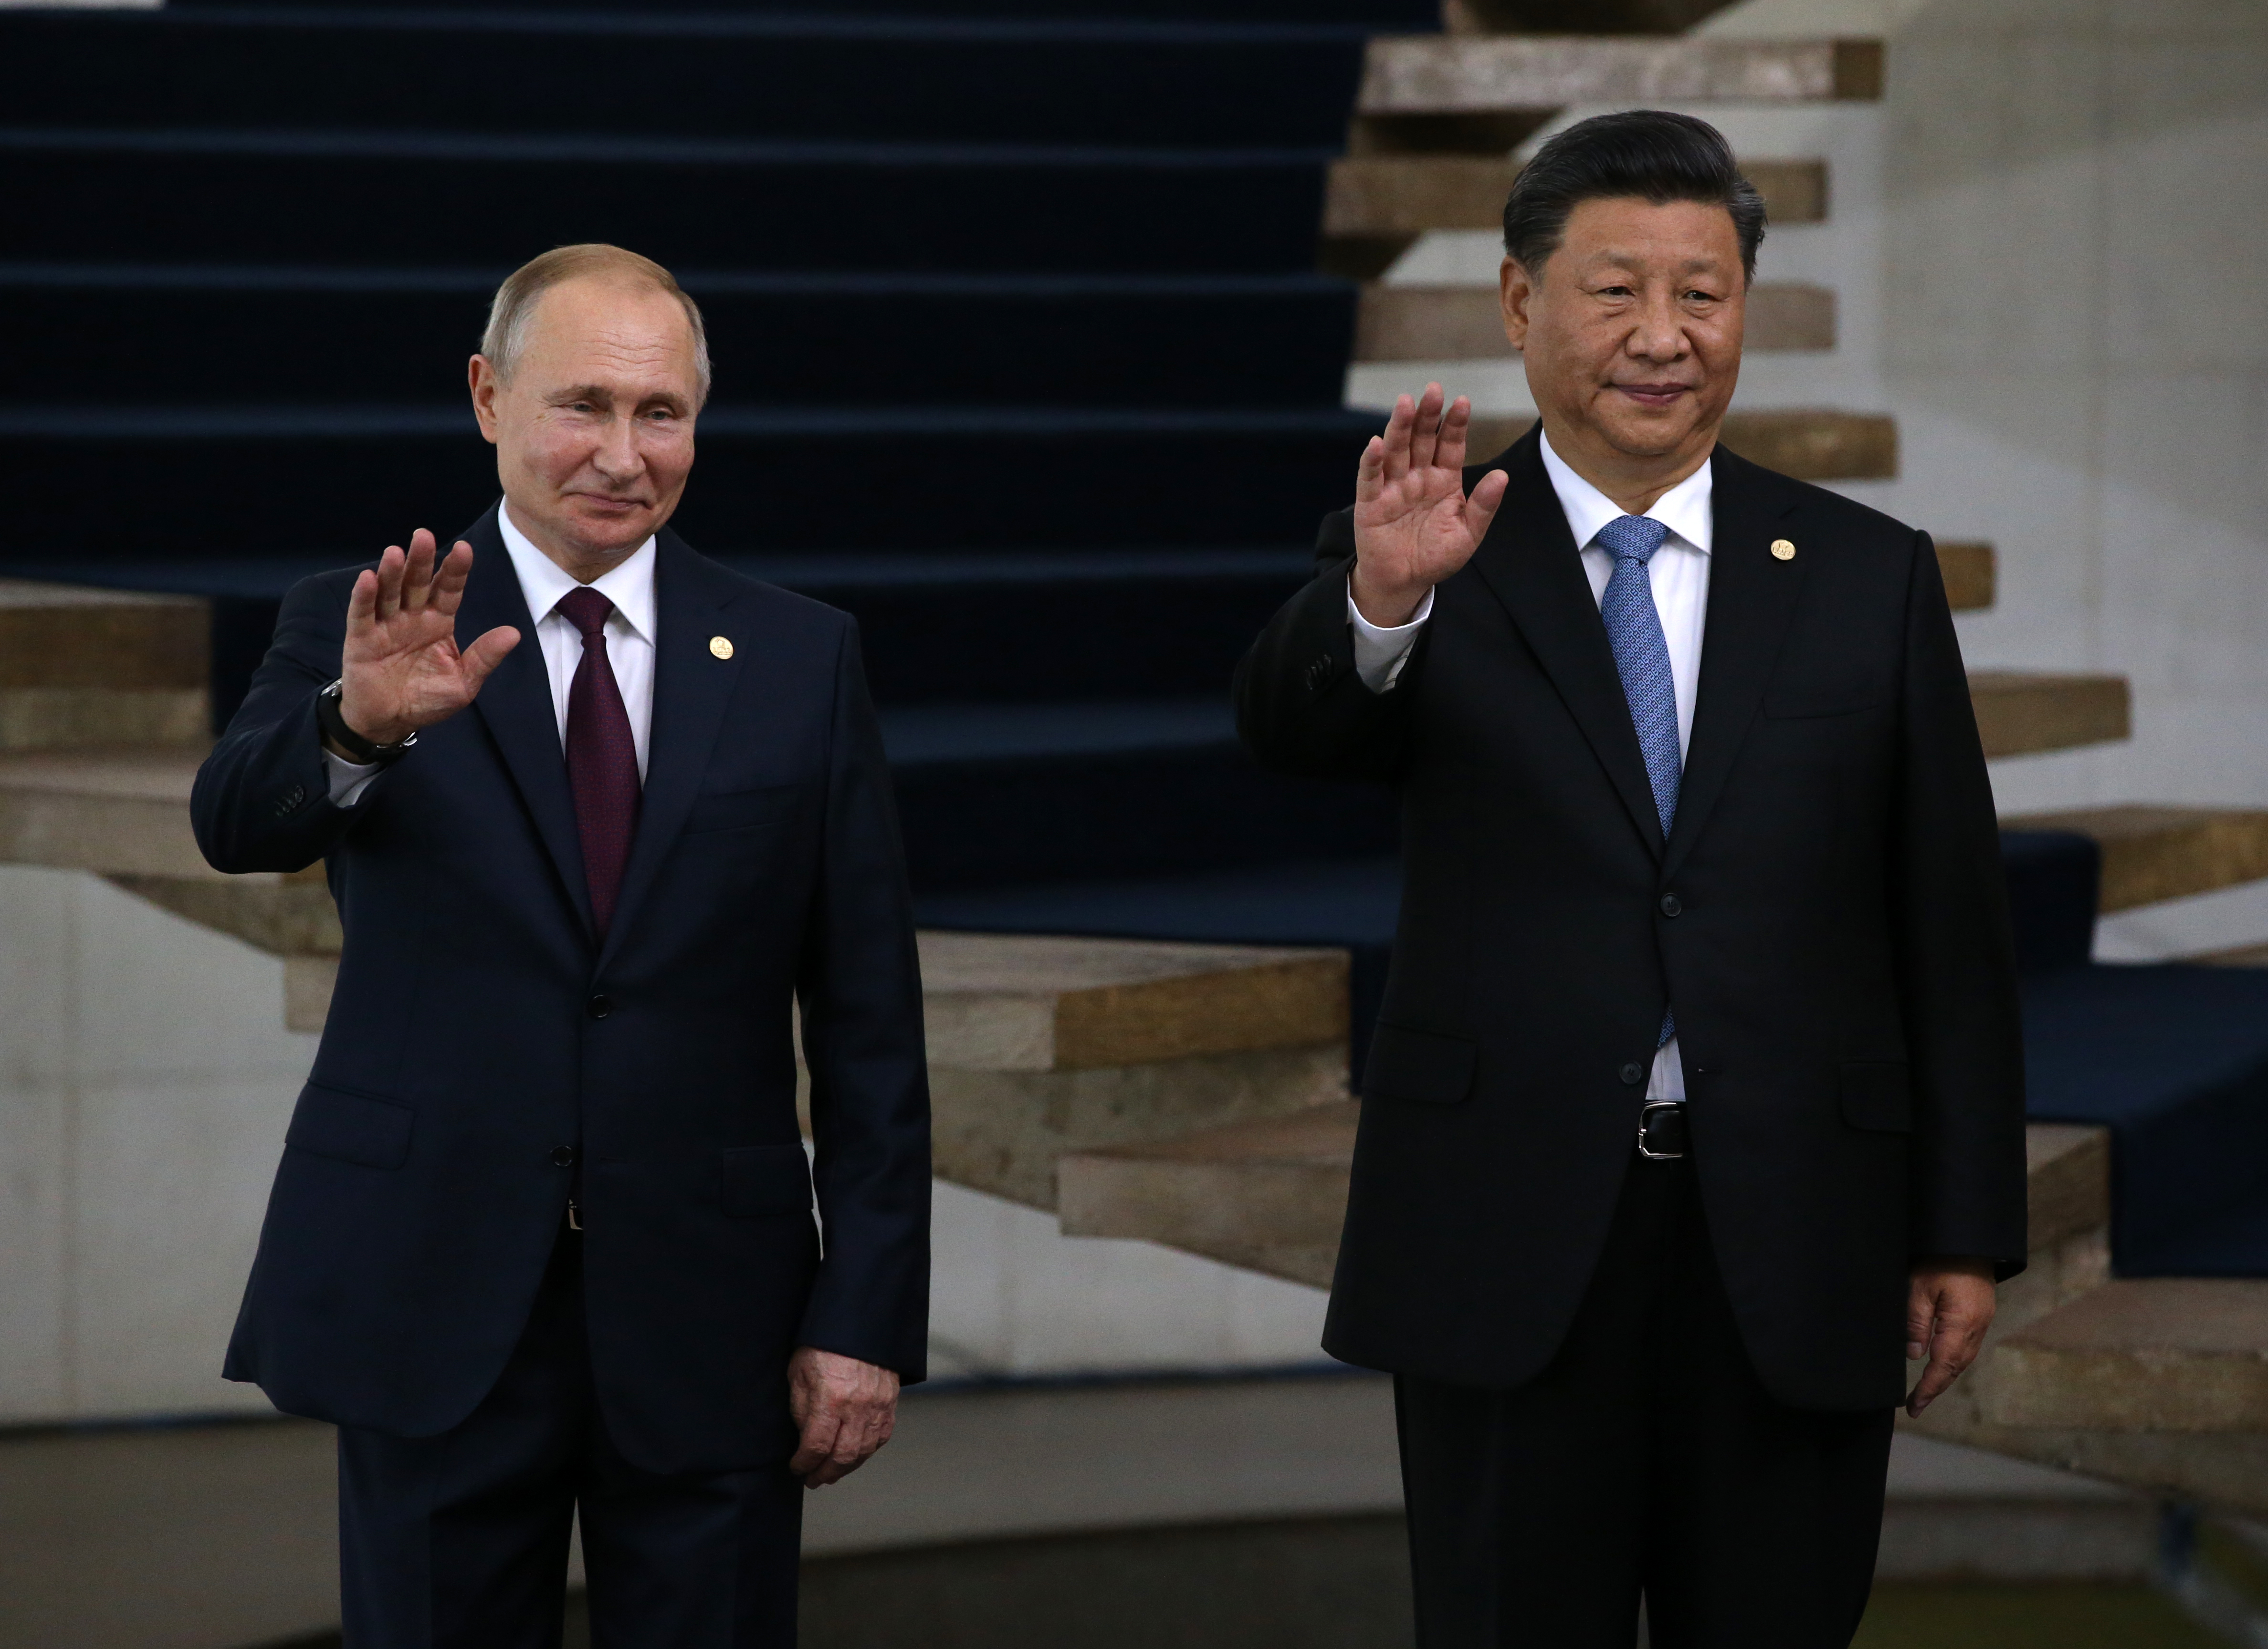 Russian President Vladimir Putin and Chinese President Xi Jinping smile and wave